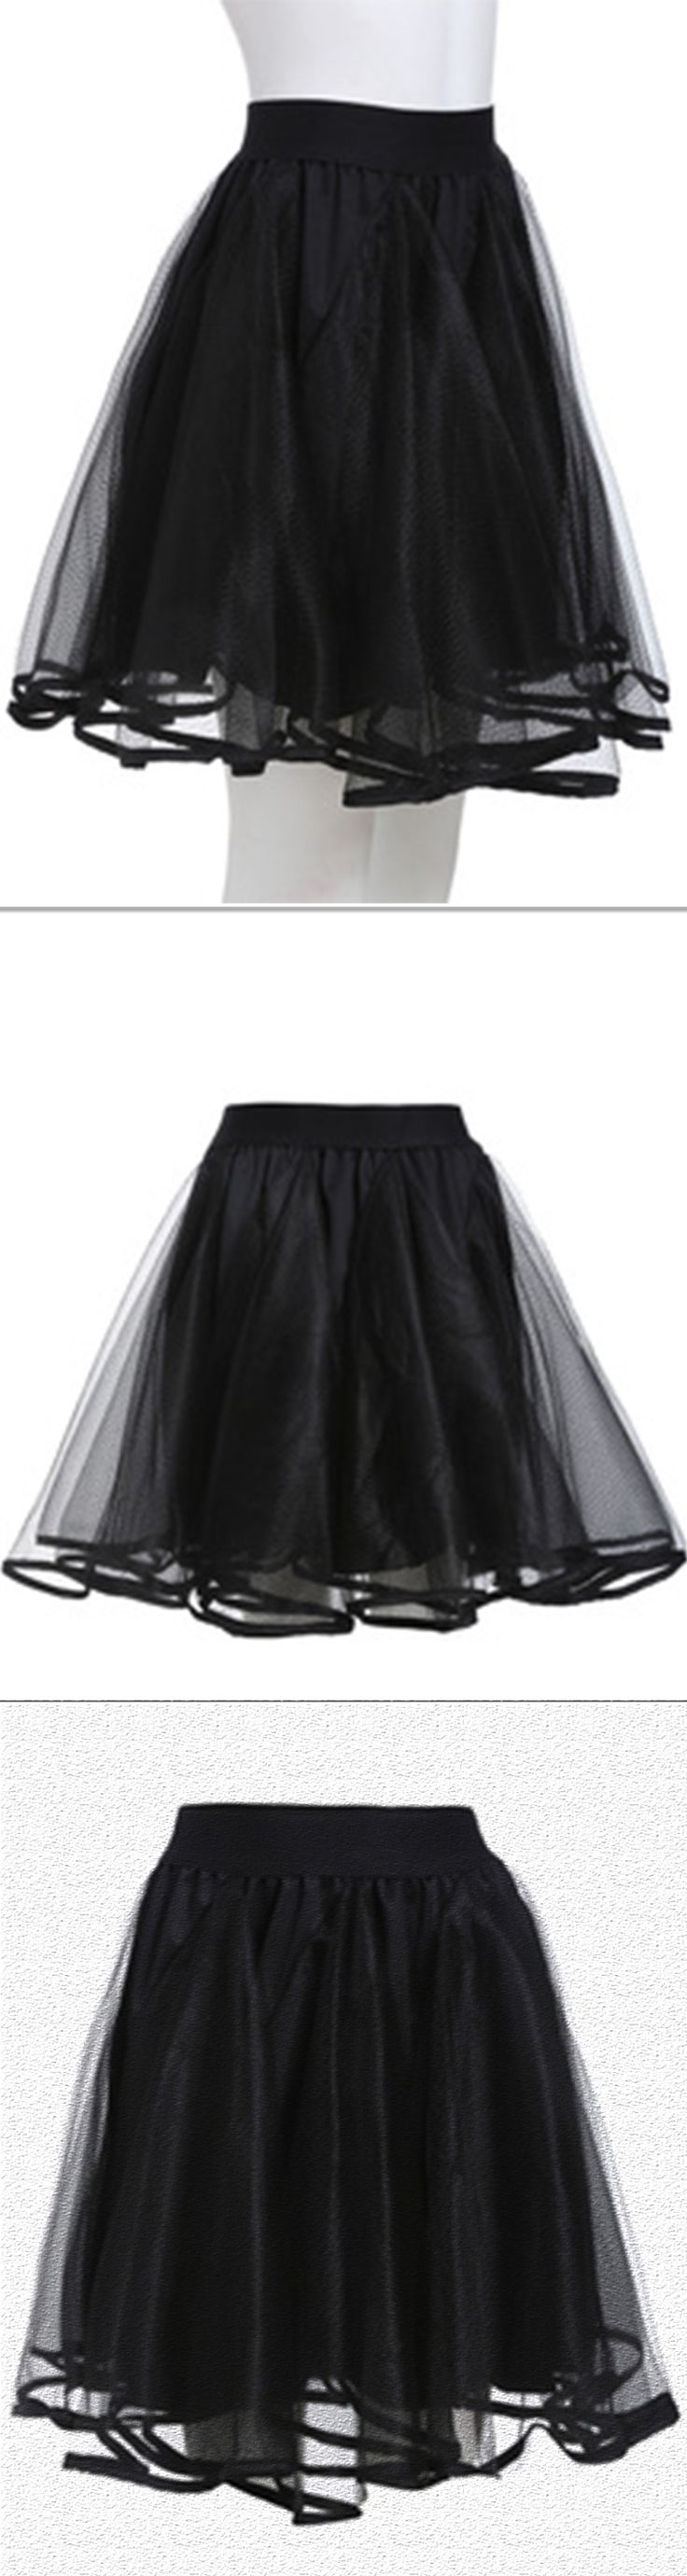 Beautiful mesh skirt! This skirt is made by organza with elastic in waist .Cute and fashion for date day!